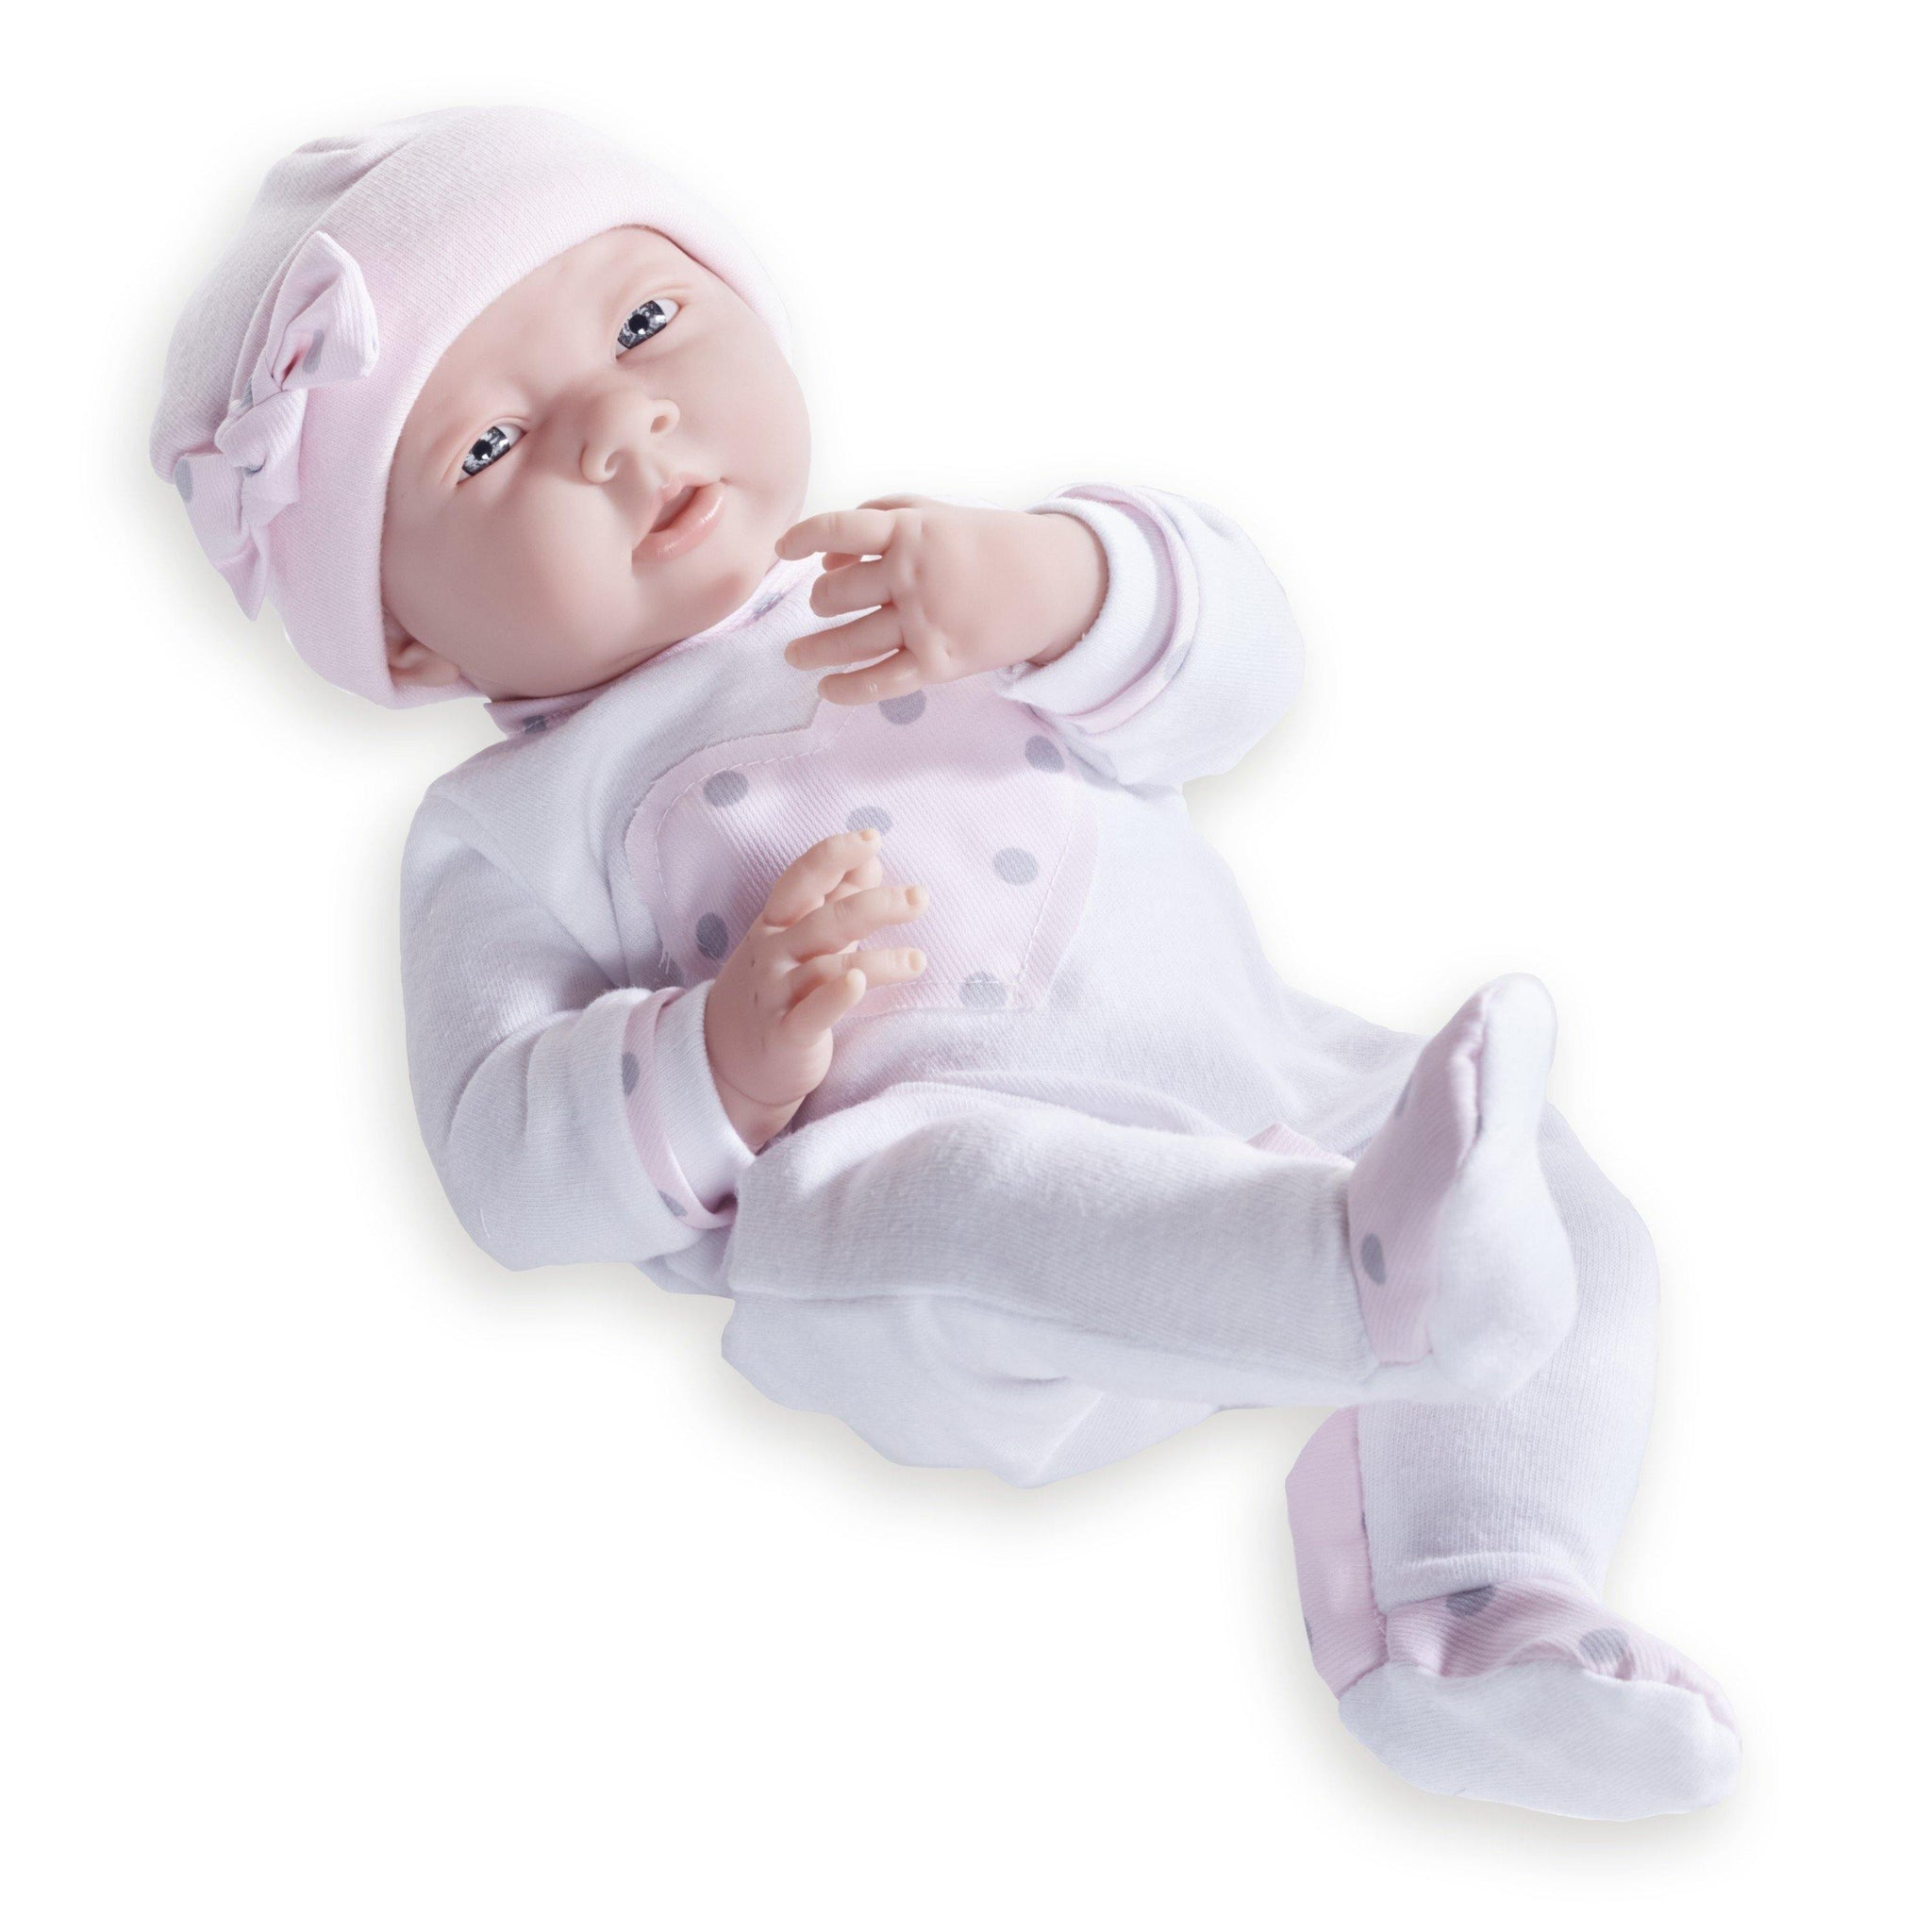 JC Toys, La Newborn 15in Real Girl Baby Doll in Cuddly Pink Heart Pajamas